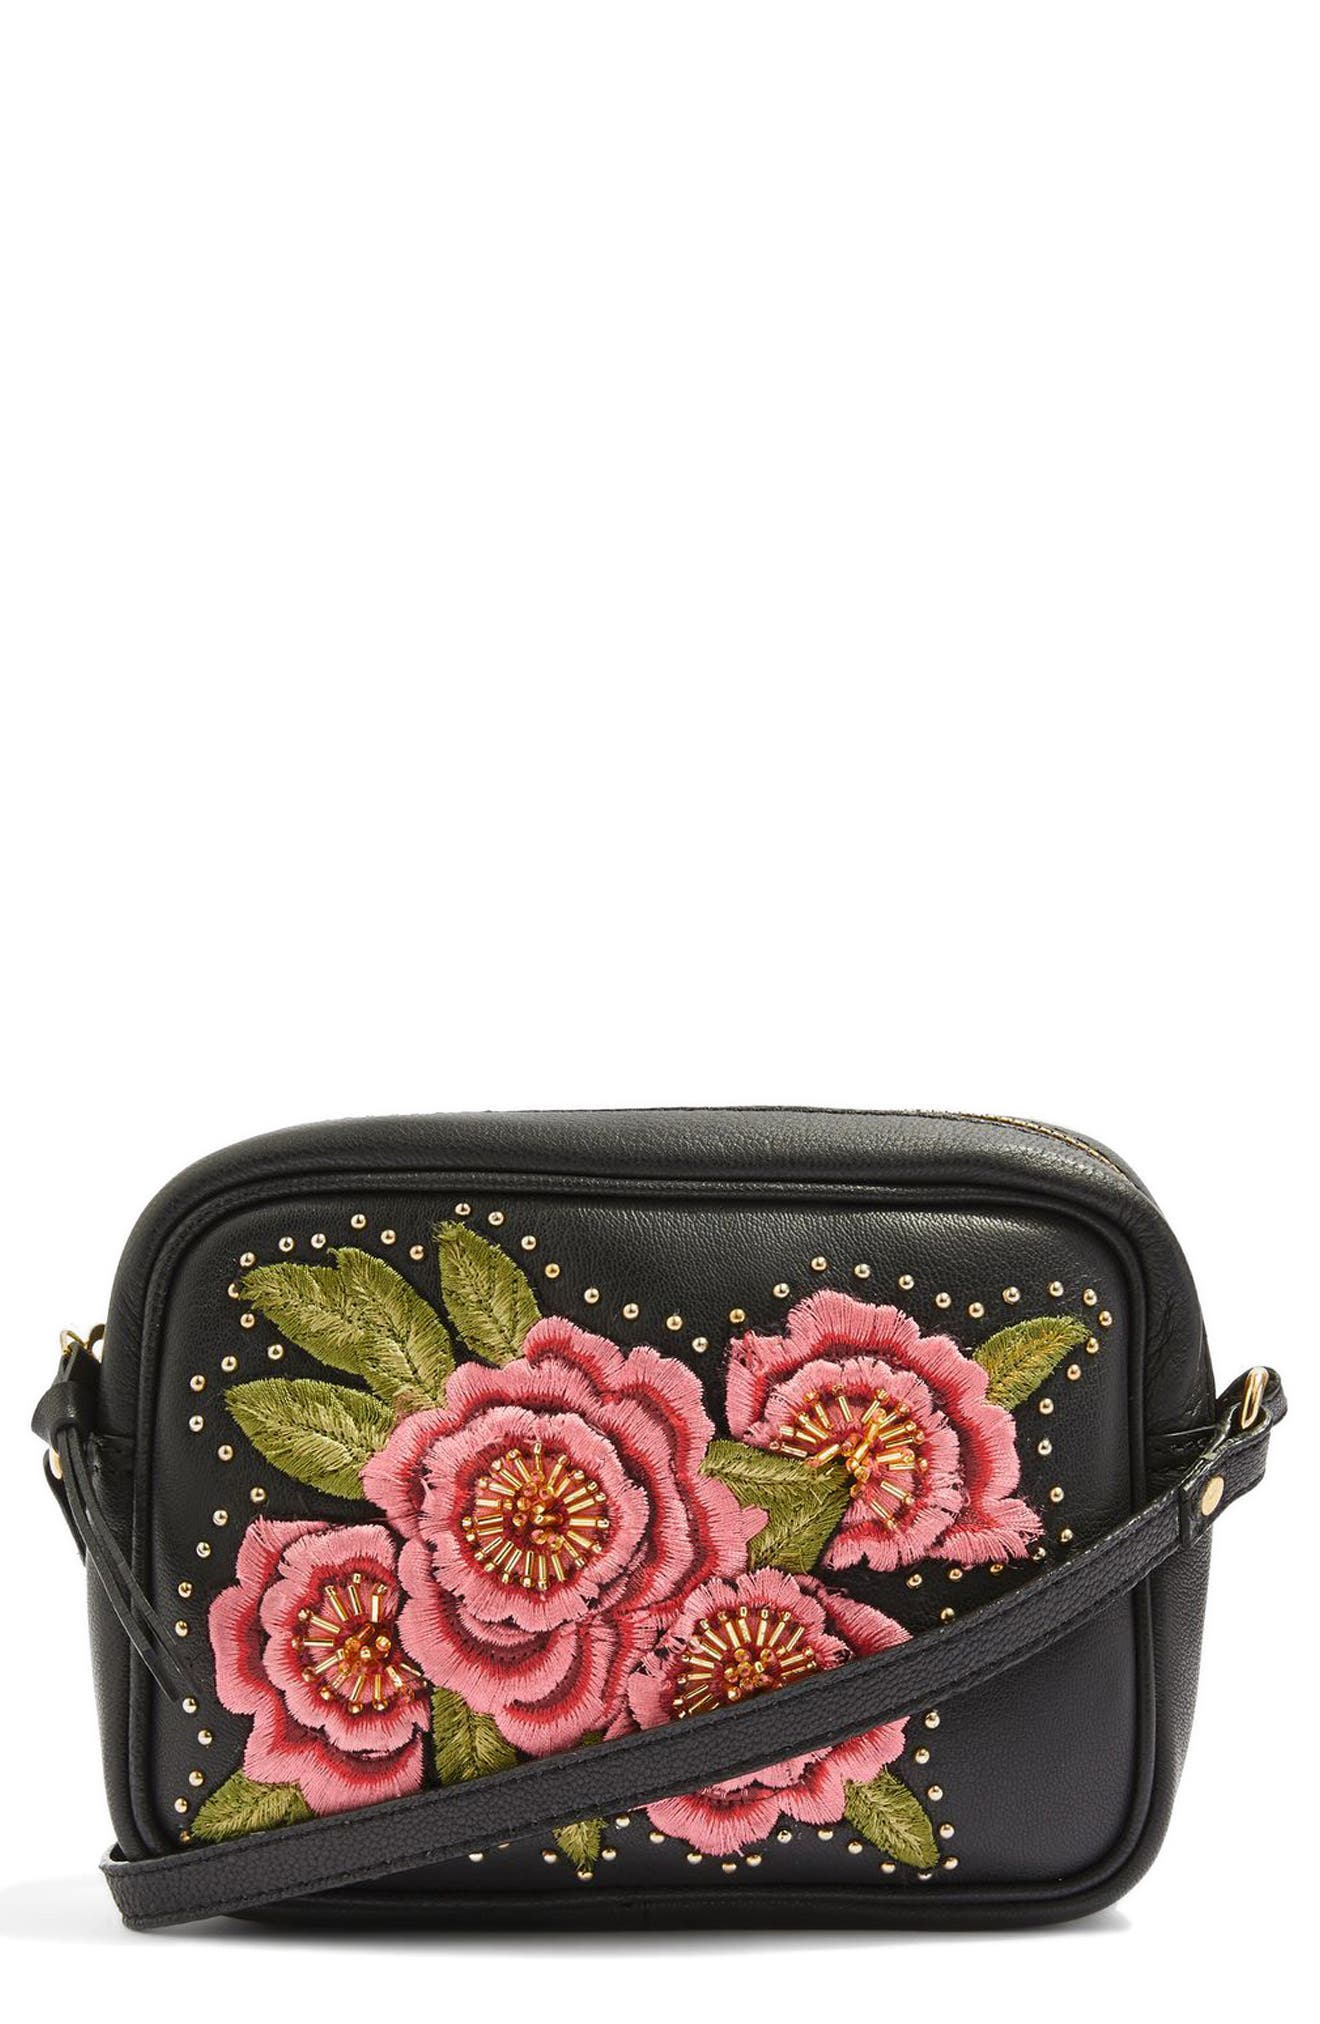 Floral Embroidered Leather Crossbody Bag,                         Main,                         color, 001